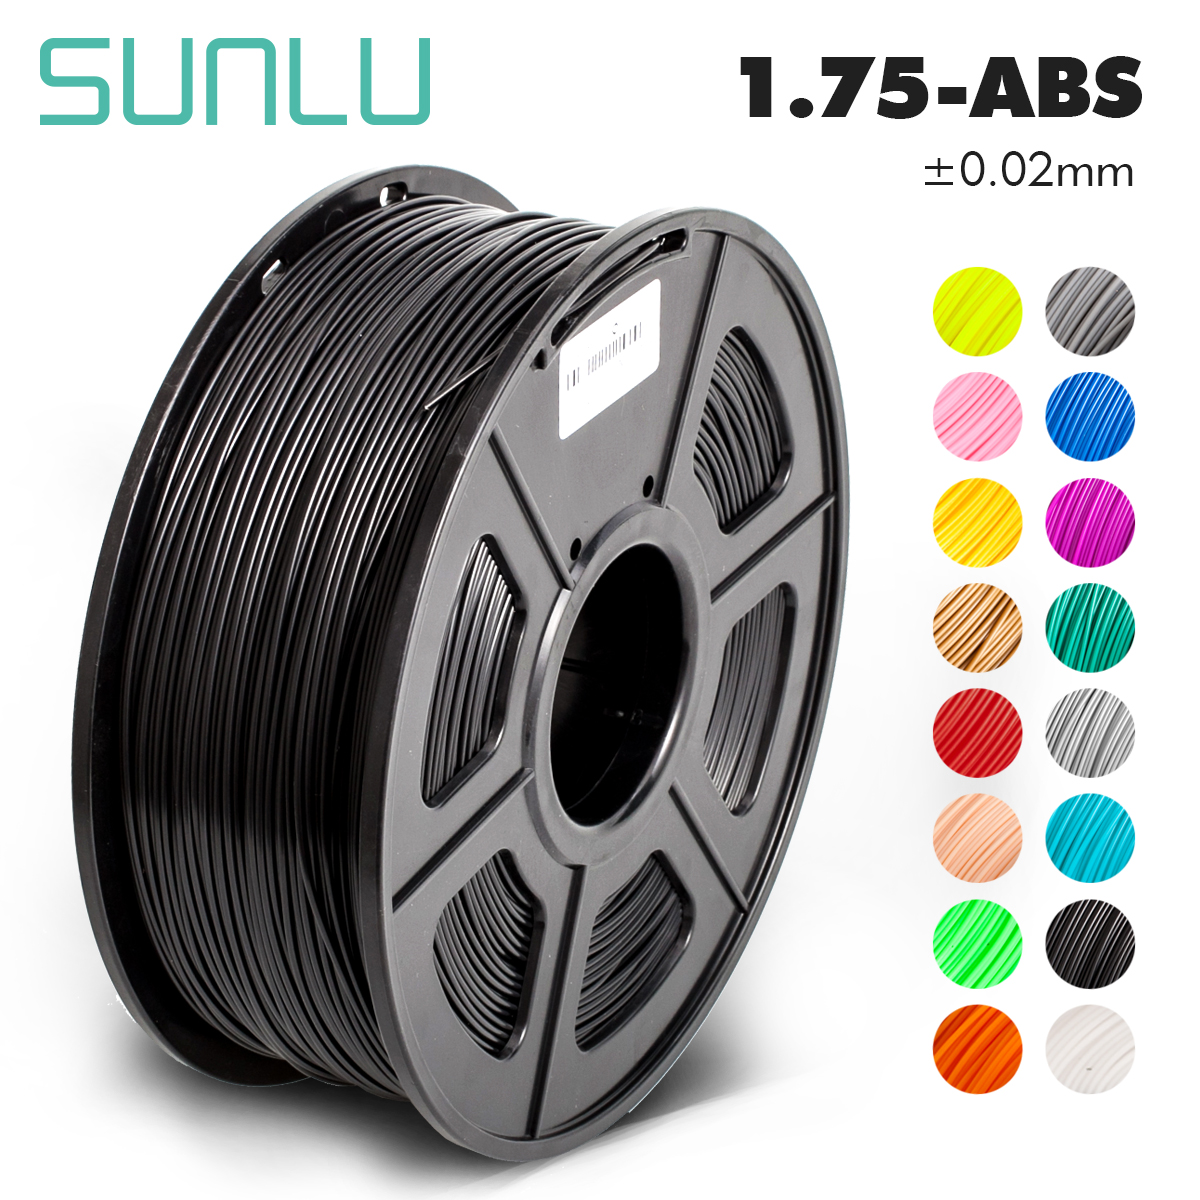 SUNLU ABS 3D Printer Filament ABS Filament 1.75 Mm 3D Printing Filament Low Odor Dimensional Accuracy +/- 0.02 Mm 2.2 LBS (1KG)